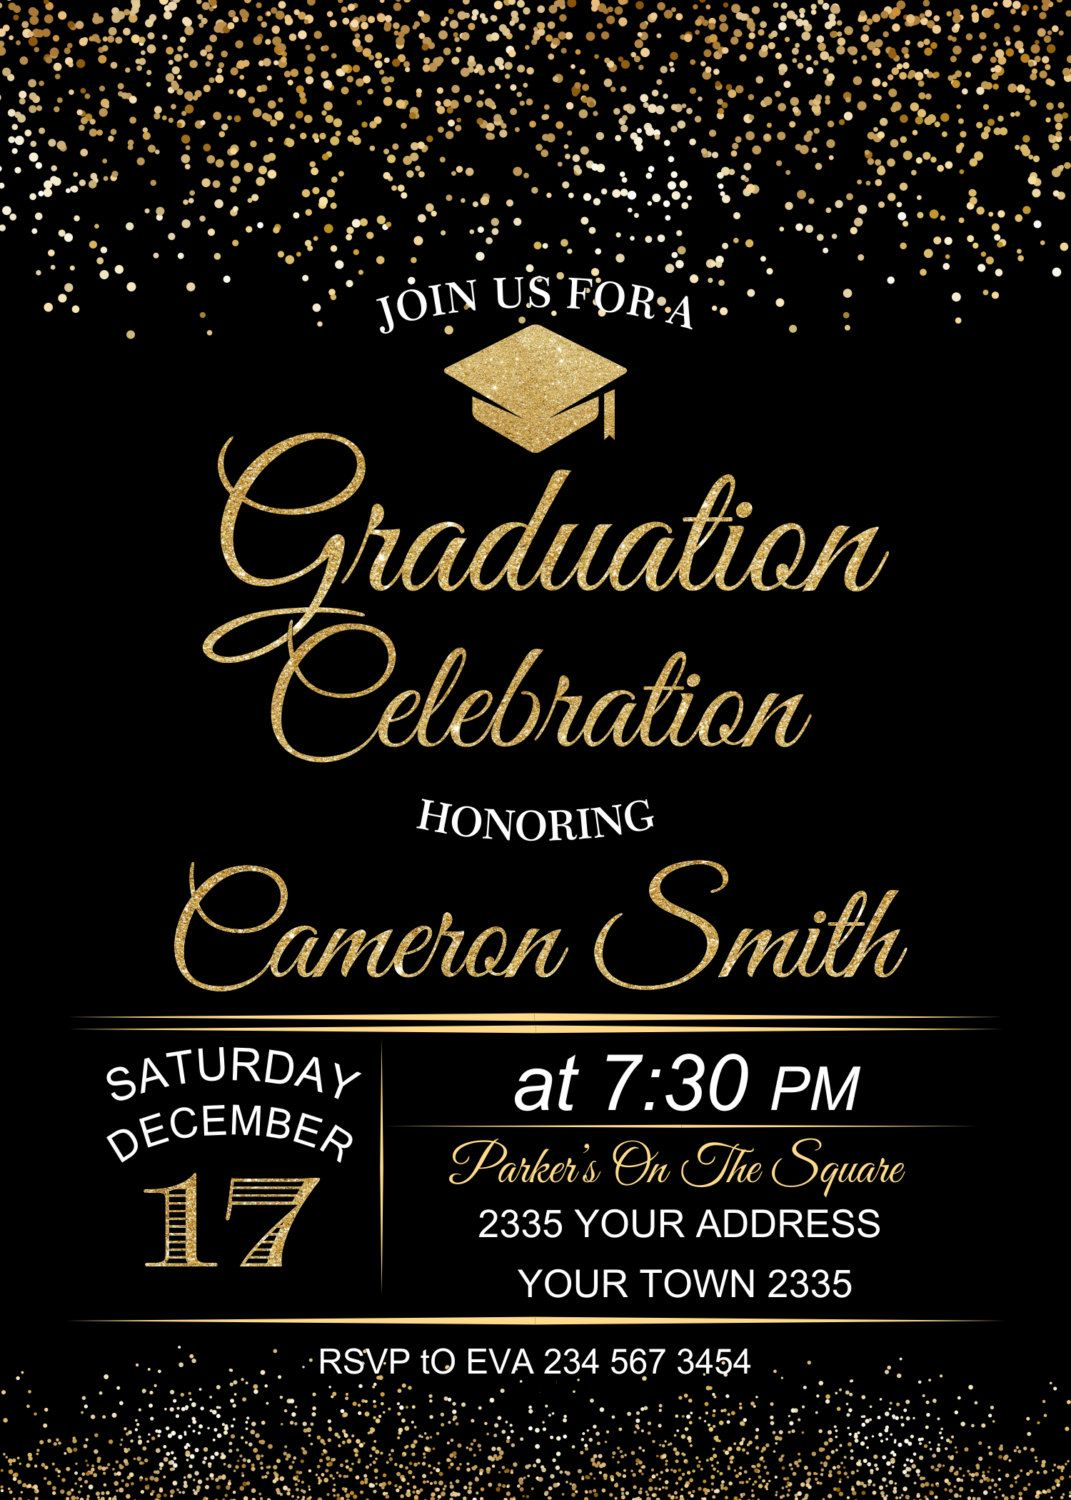 Graduation Celebration Invitation. Black background Graduation | Etsy | Graduation  invitations college, Graduation invitation cards, Graduation party  invitations